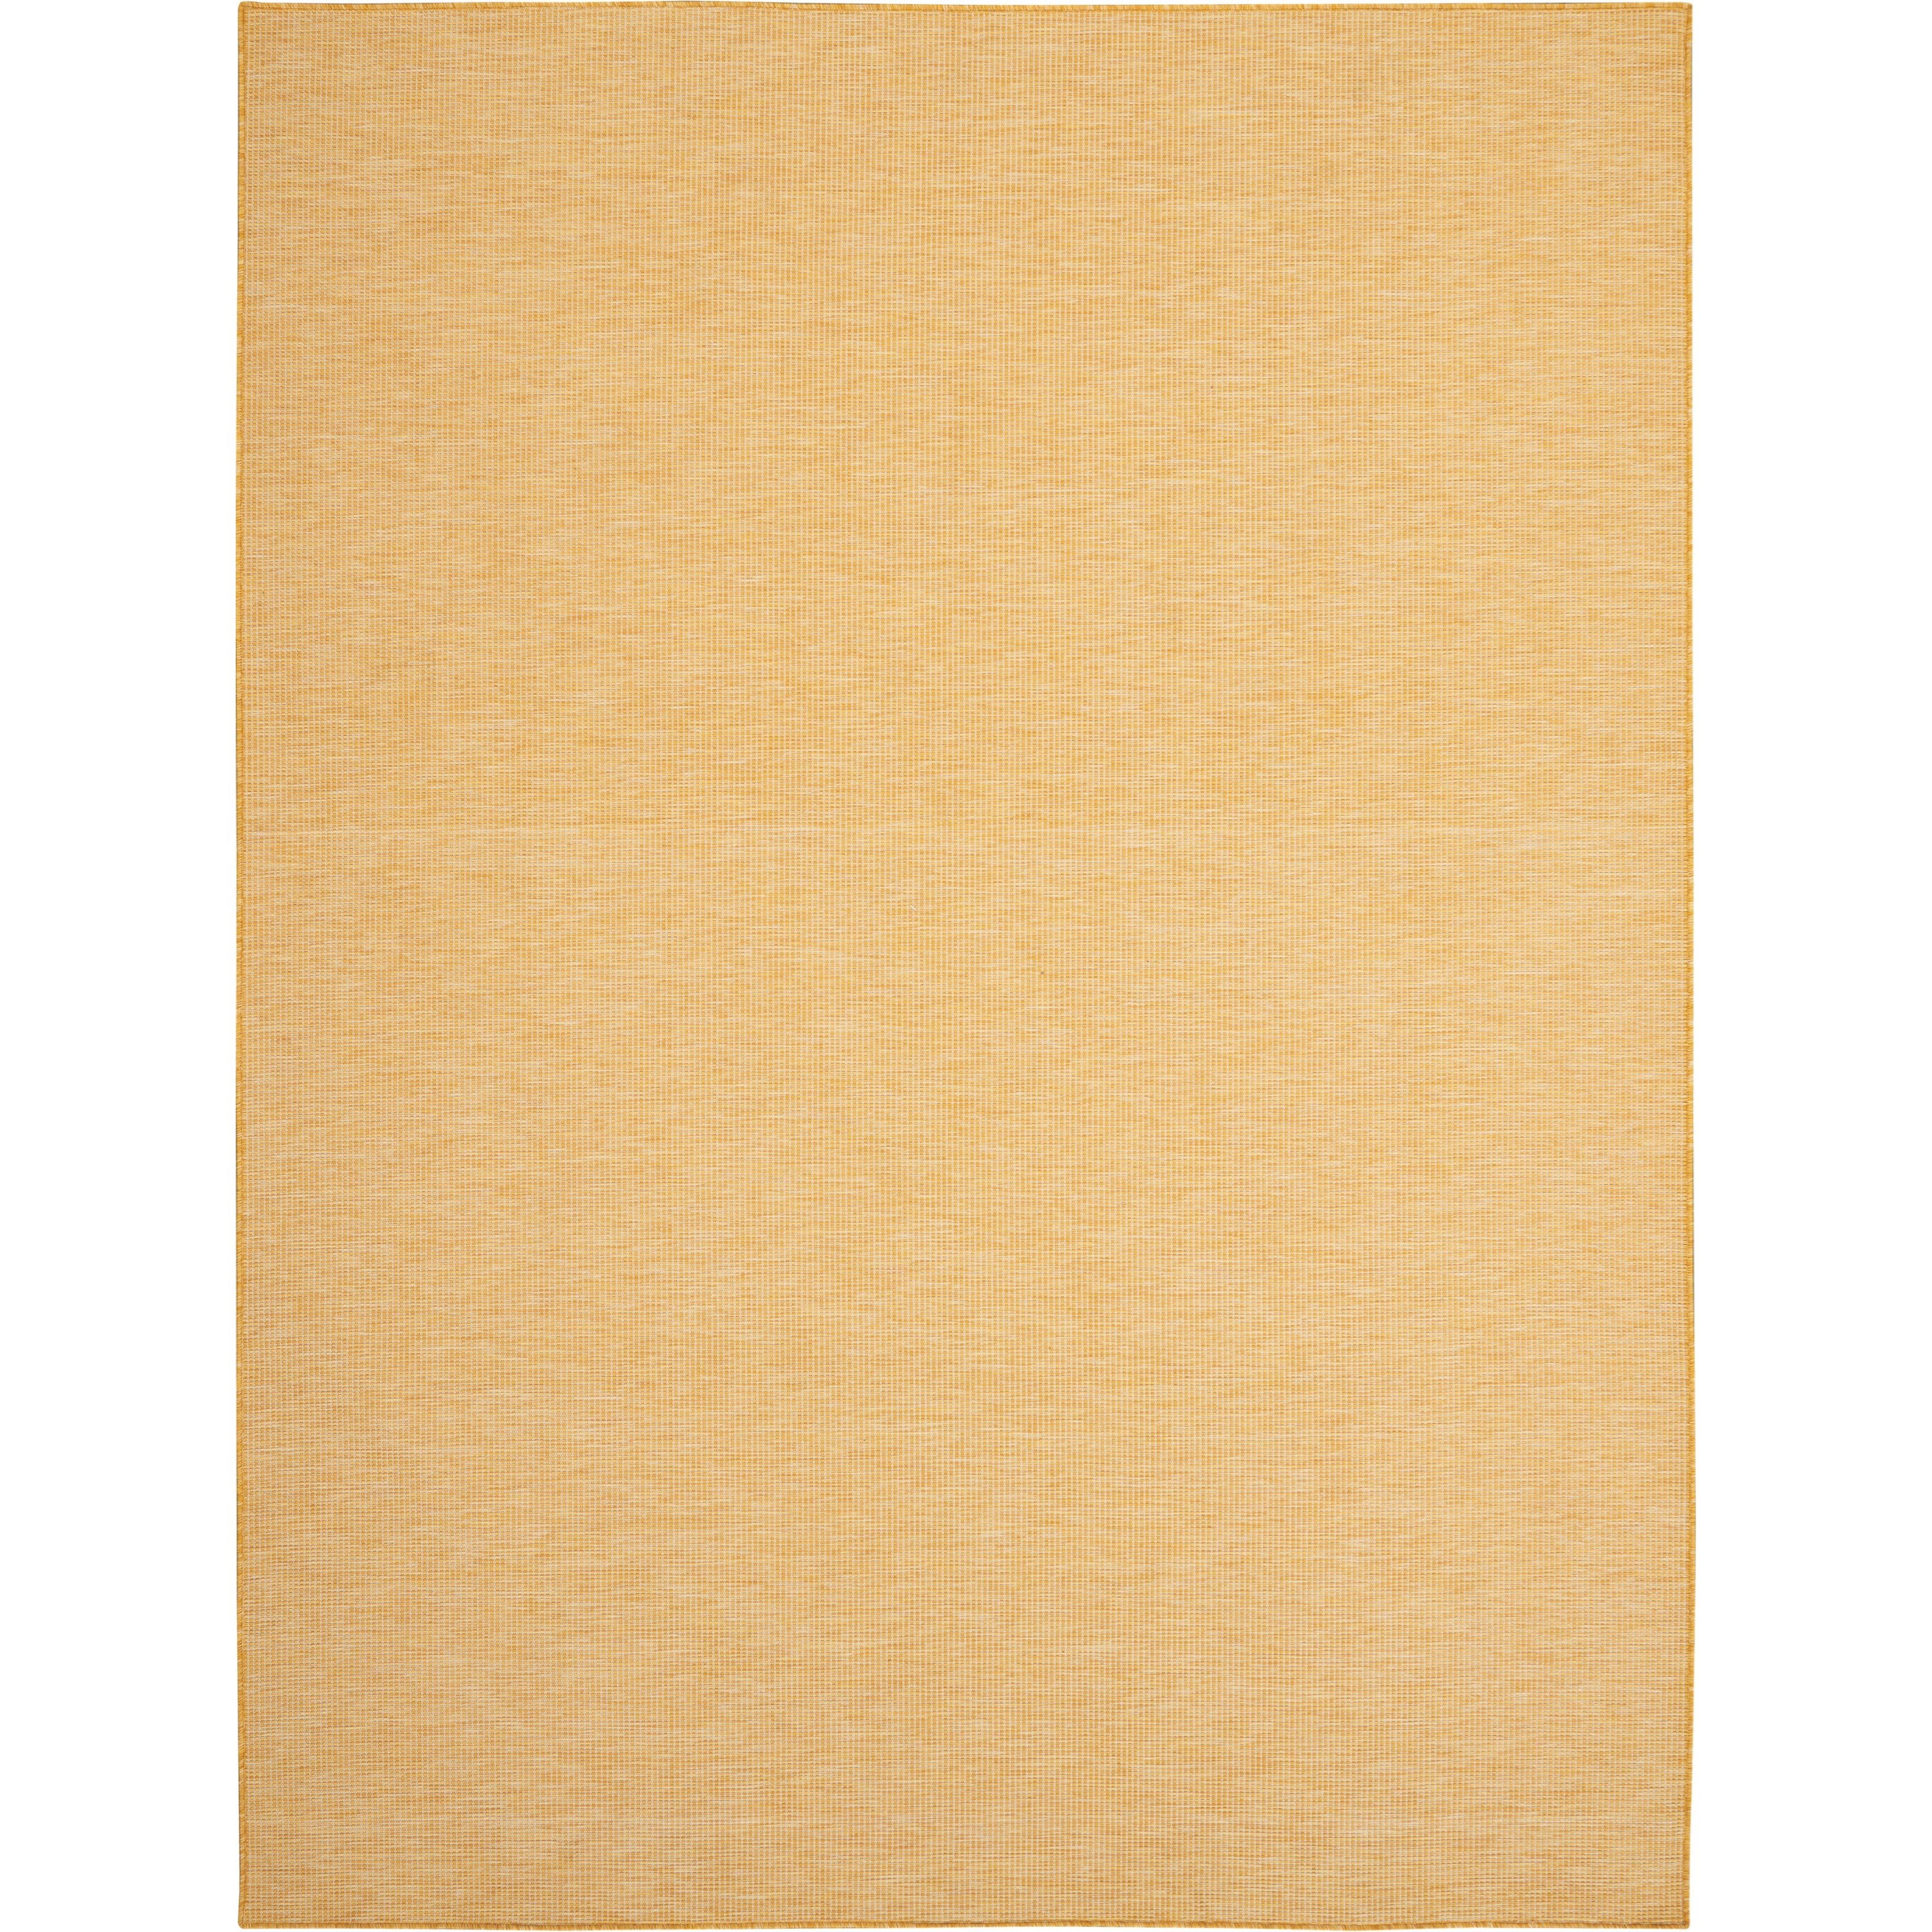 Positano 2020 8' x 10' Rug by Nourison at Home Collections Furniture